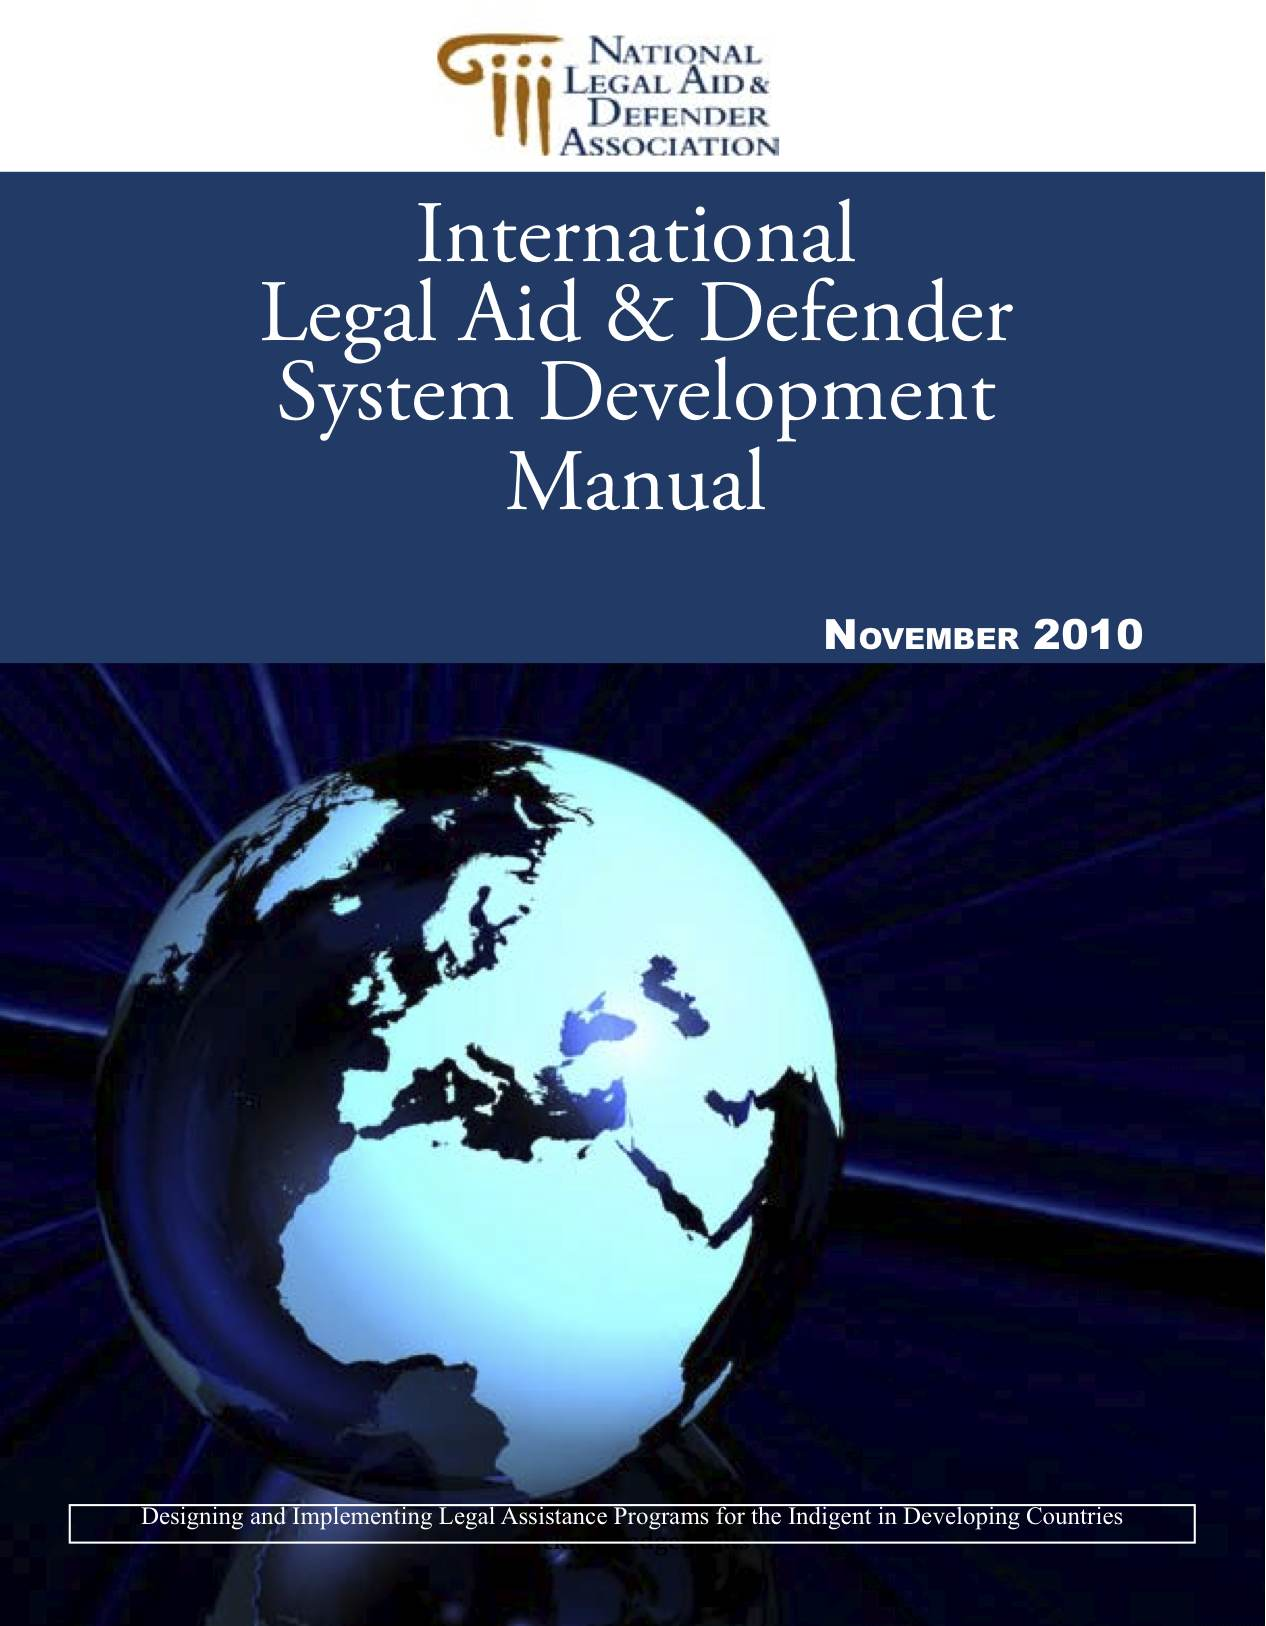 International Legal Aid & Defender System Manual